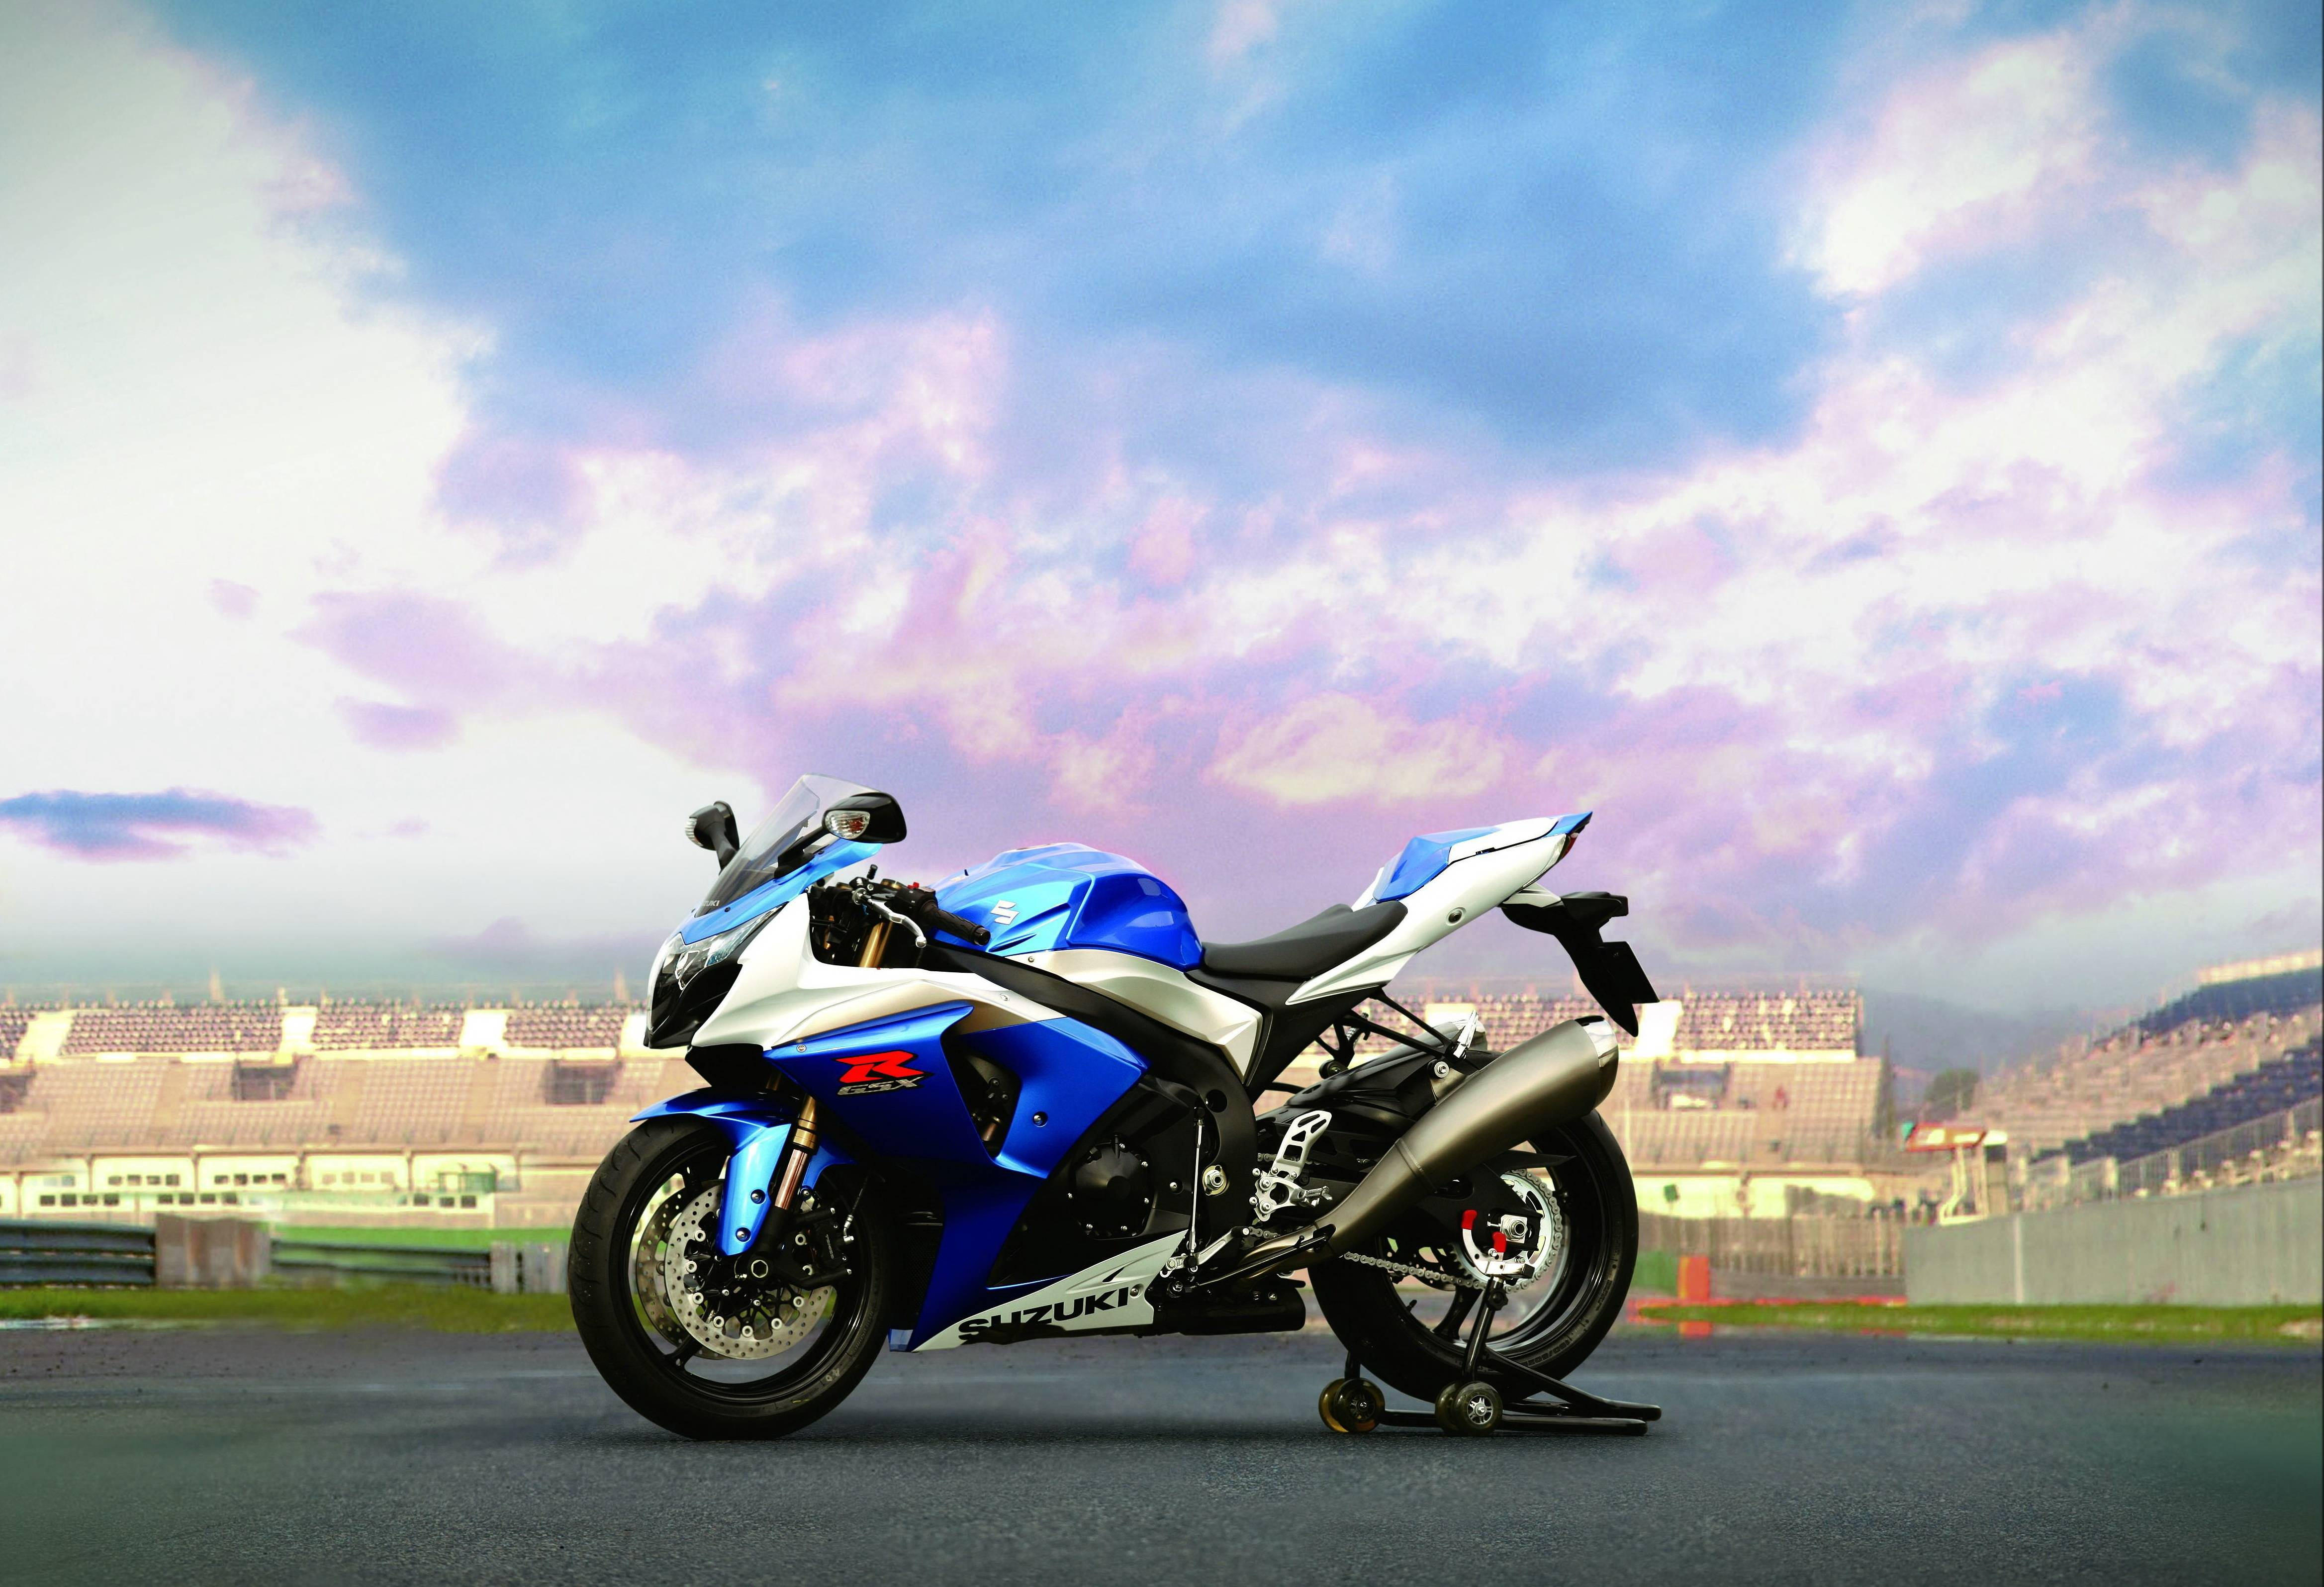 Susuki Gsxr 1000 Wallpapers - Top Free Susuki Gsxr 1000 Backgrounds